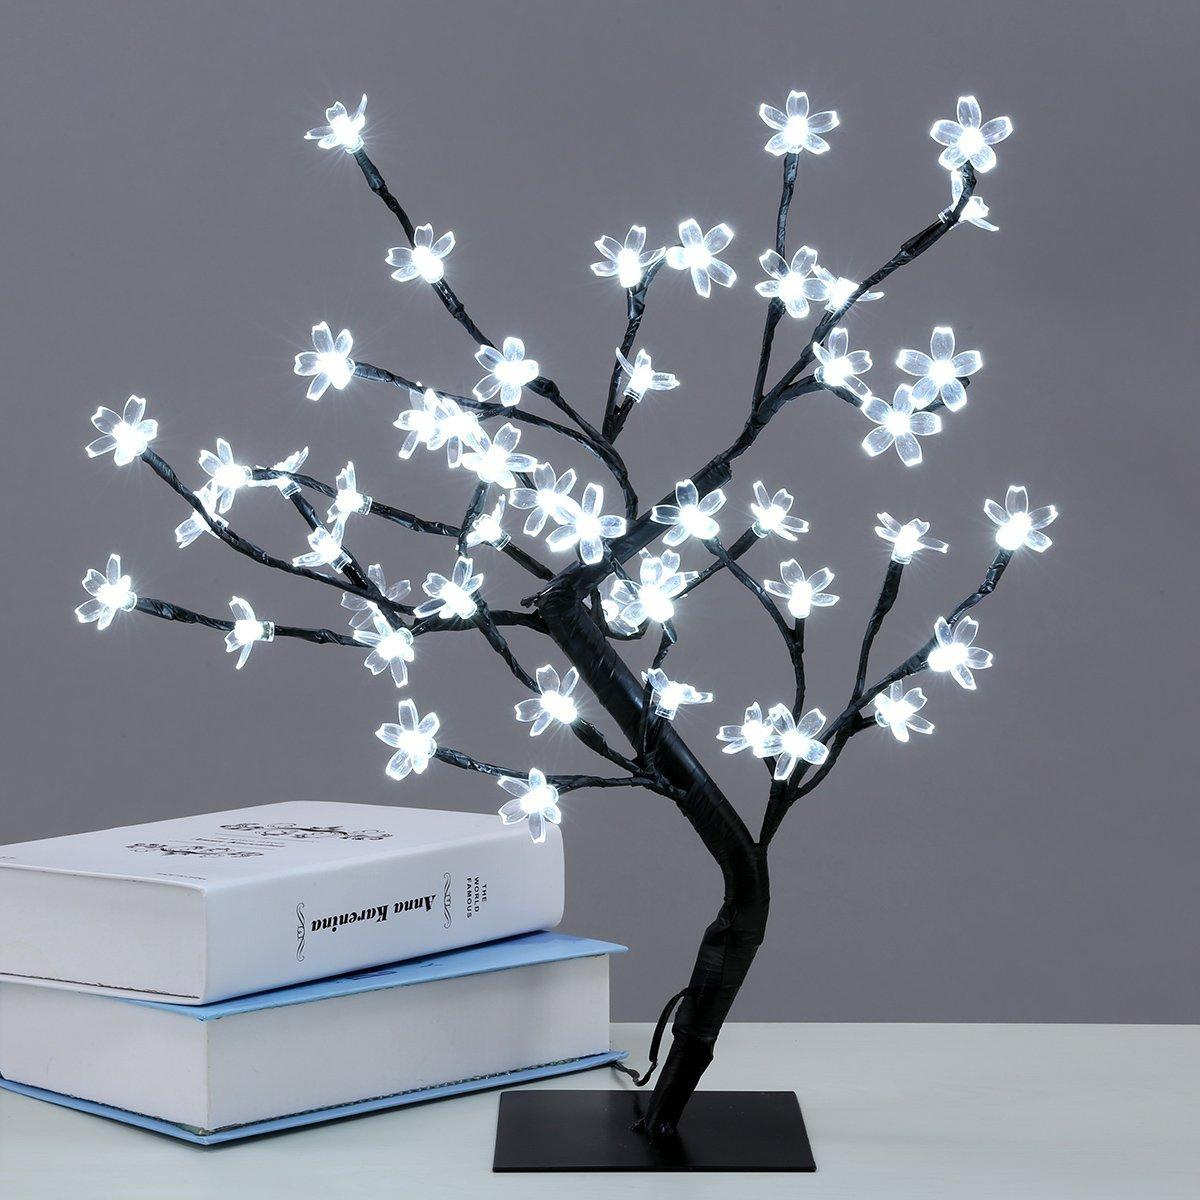 2018 48 leds cherry blossom desk top bonsai tree light white 045m 2018 48 leds cherry blossom desk top bonsai tree light white 045m black branches festival home party wedding indoor decoration from dlf0009 mightylinksfo